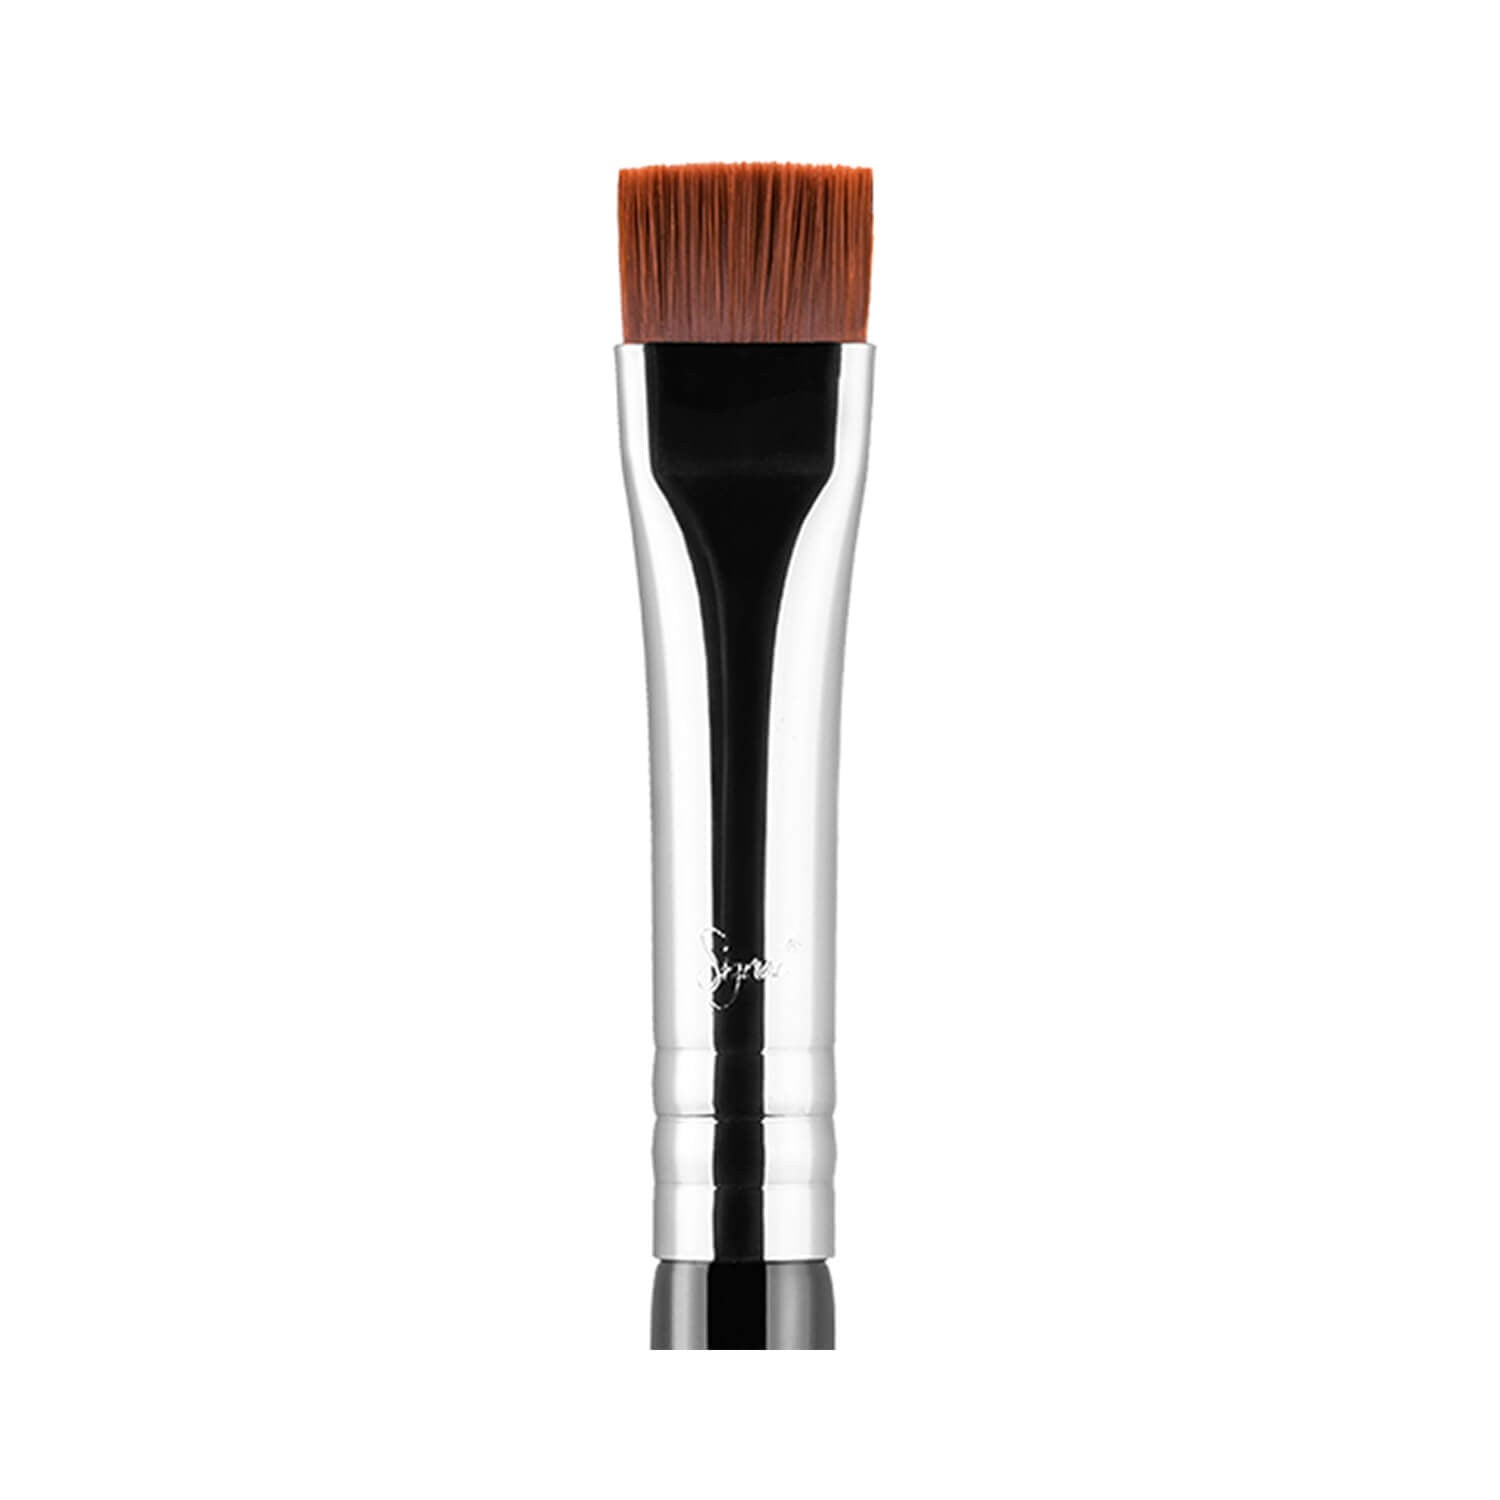 Sigma Beauty E15 Flat Definer Brush